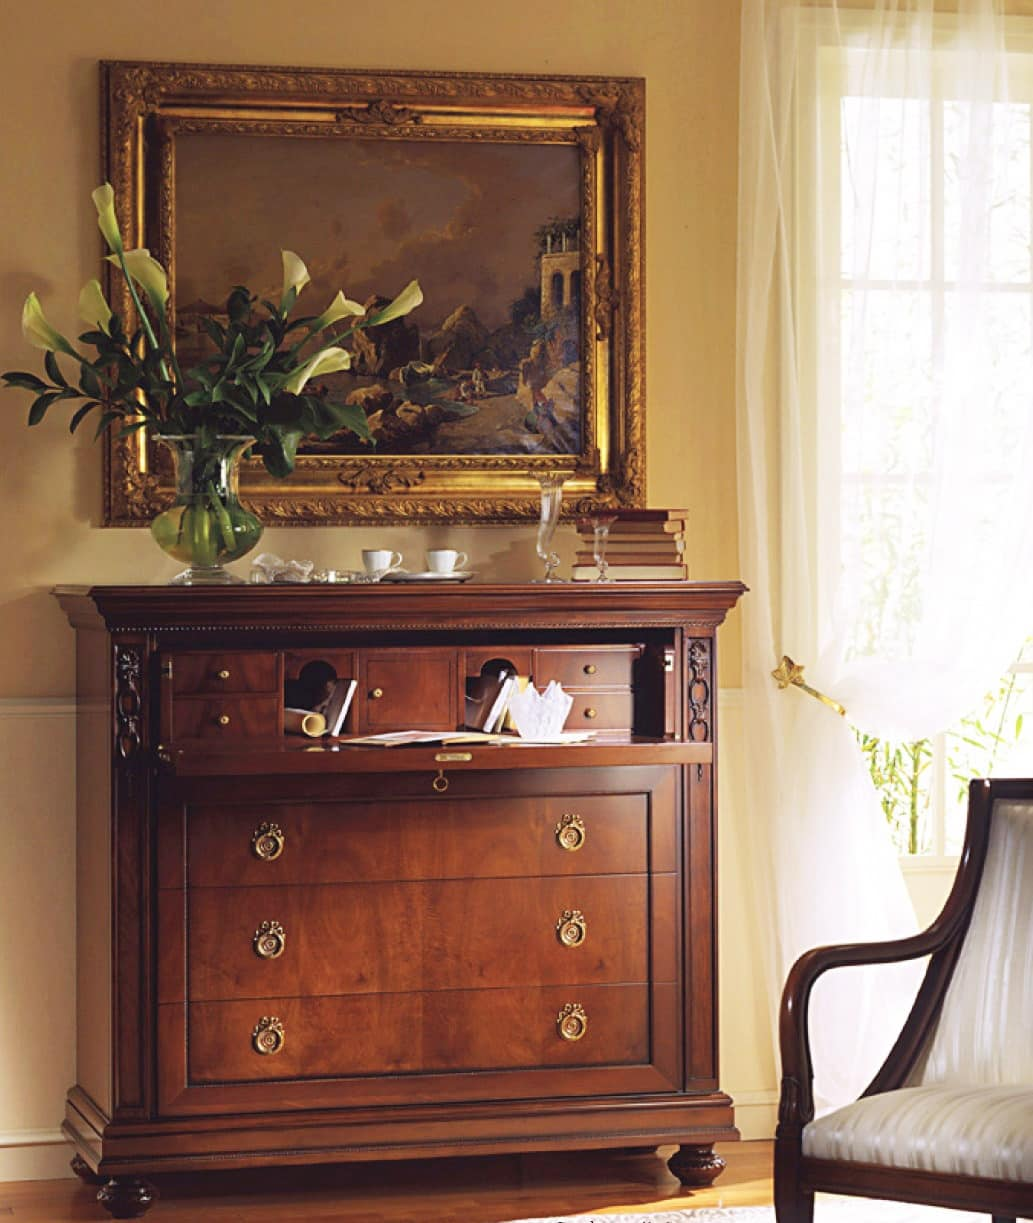 Voltaire flap door, Chest of drawers with flap door and 3 drawers